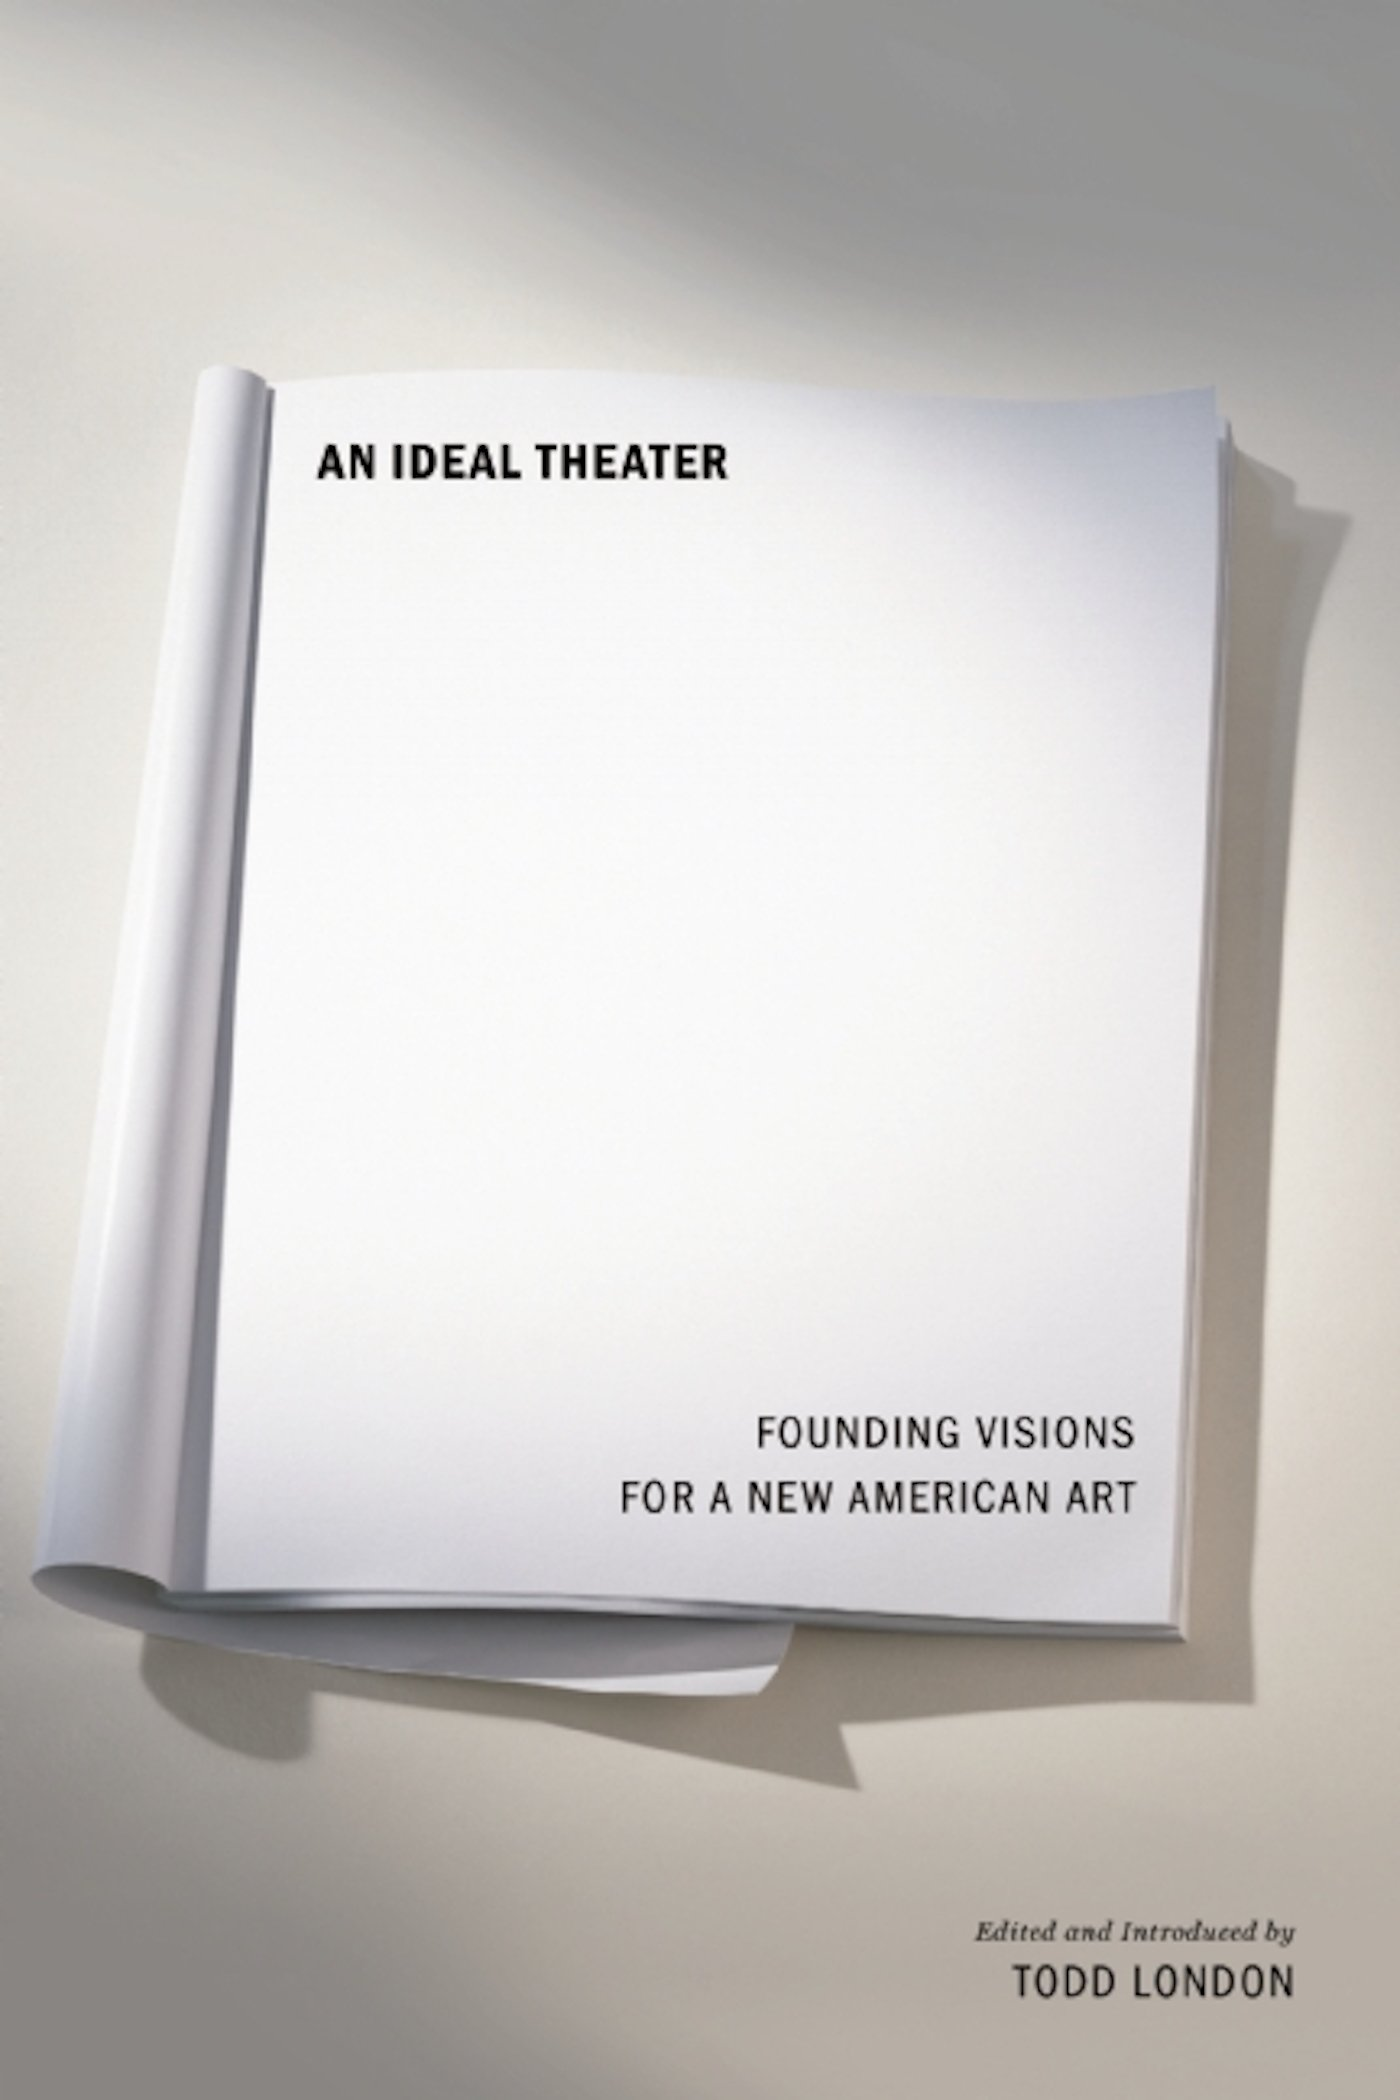 an ideal theater founding visions for a new american art todd